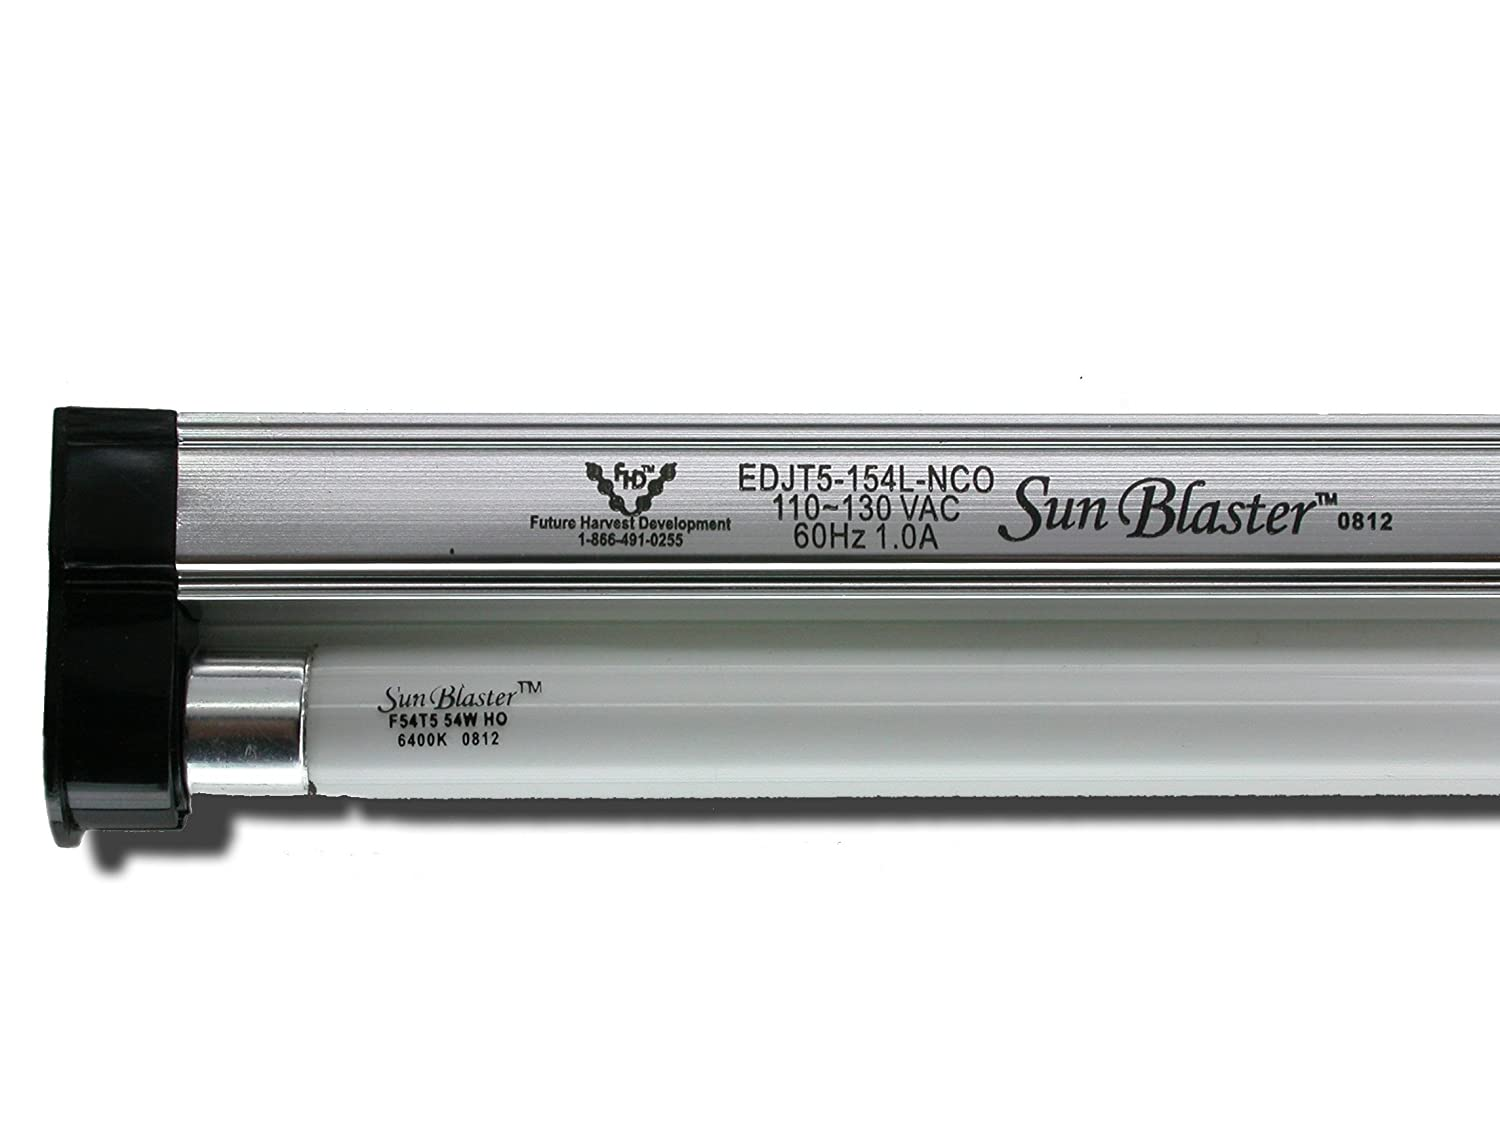 fits sunblaster fluorescent ballasts by to adjustable or stand most and grow from light is high dp lighting lights